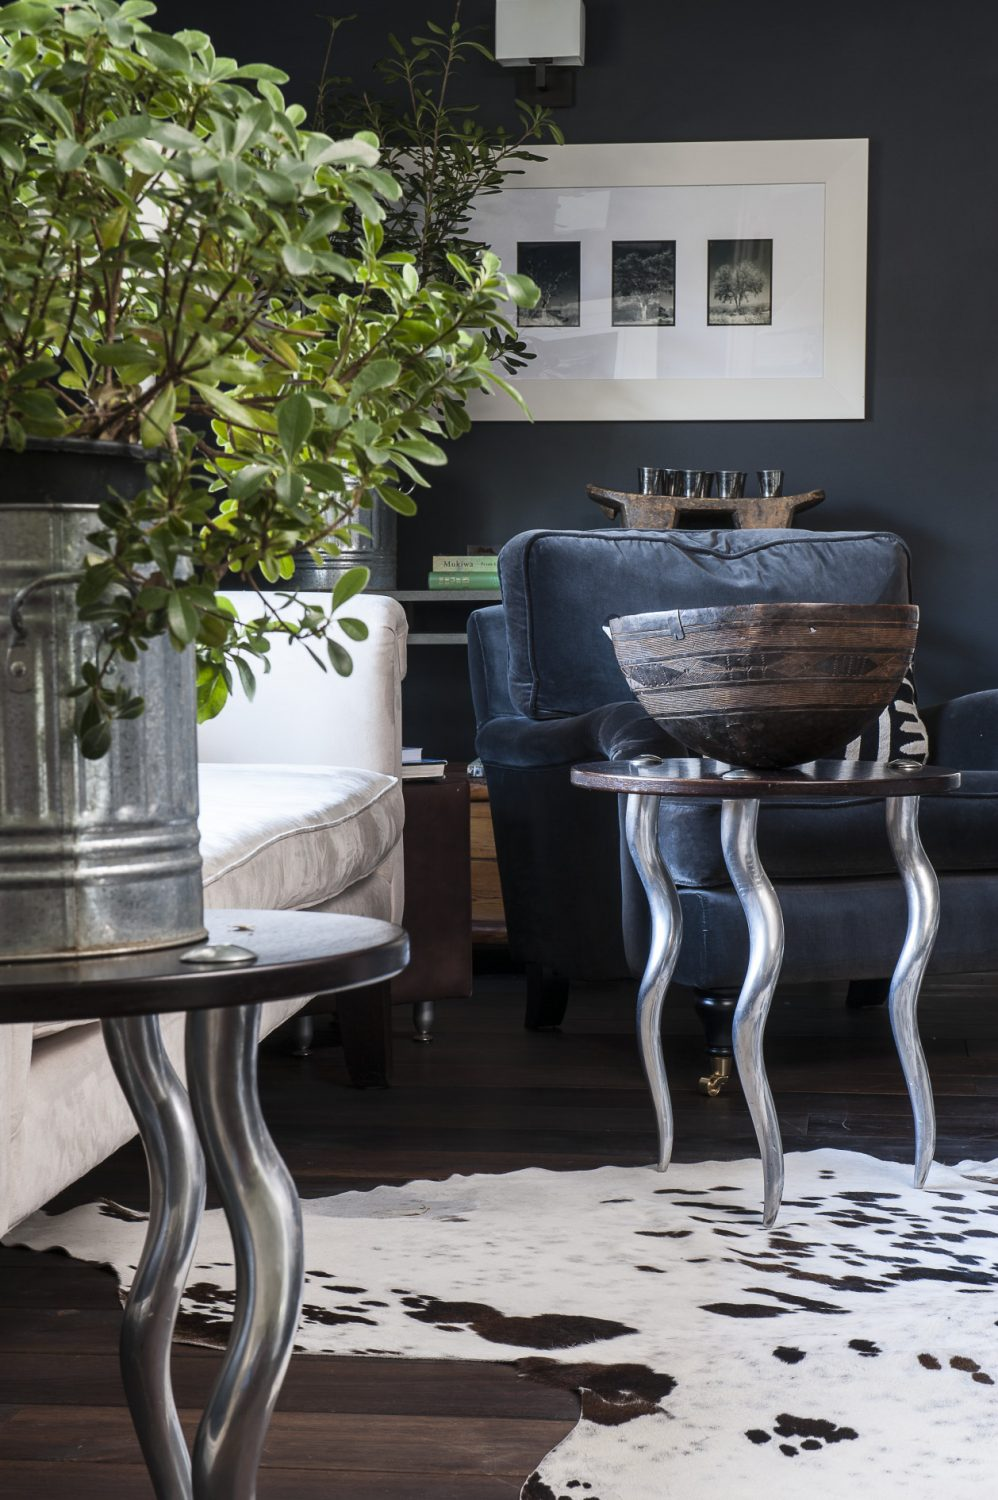 The sofa is flanked by two superb tables with brushed aluminium legs in the shape of kudu horns